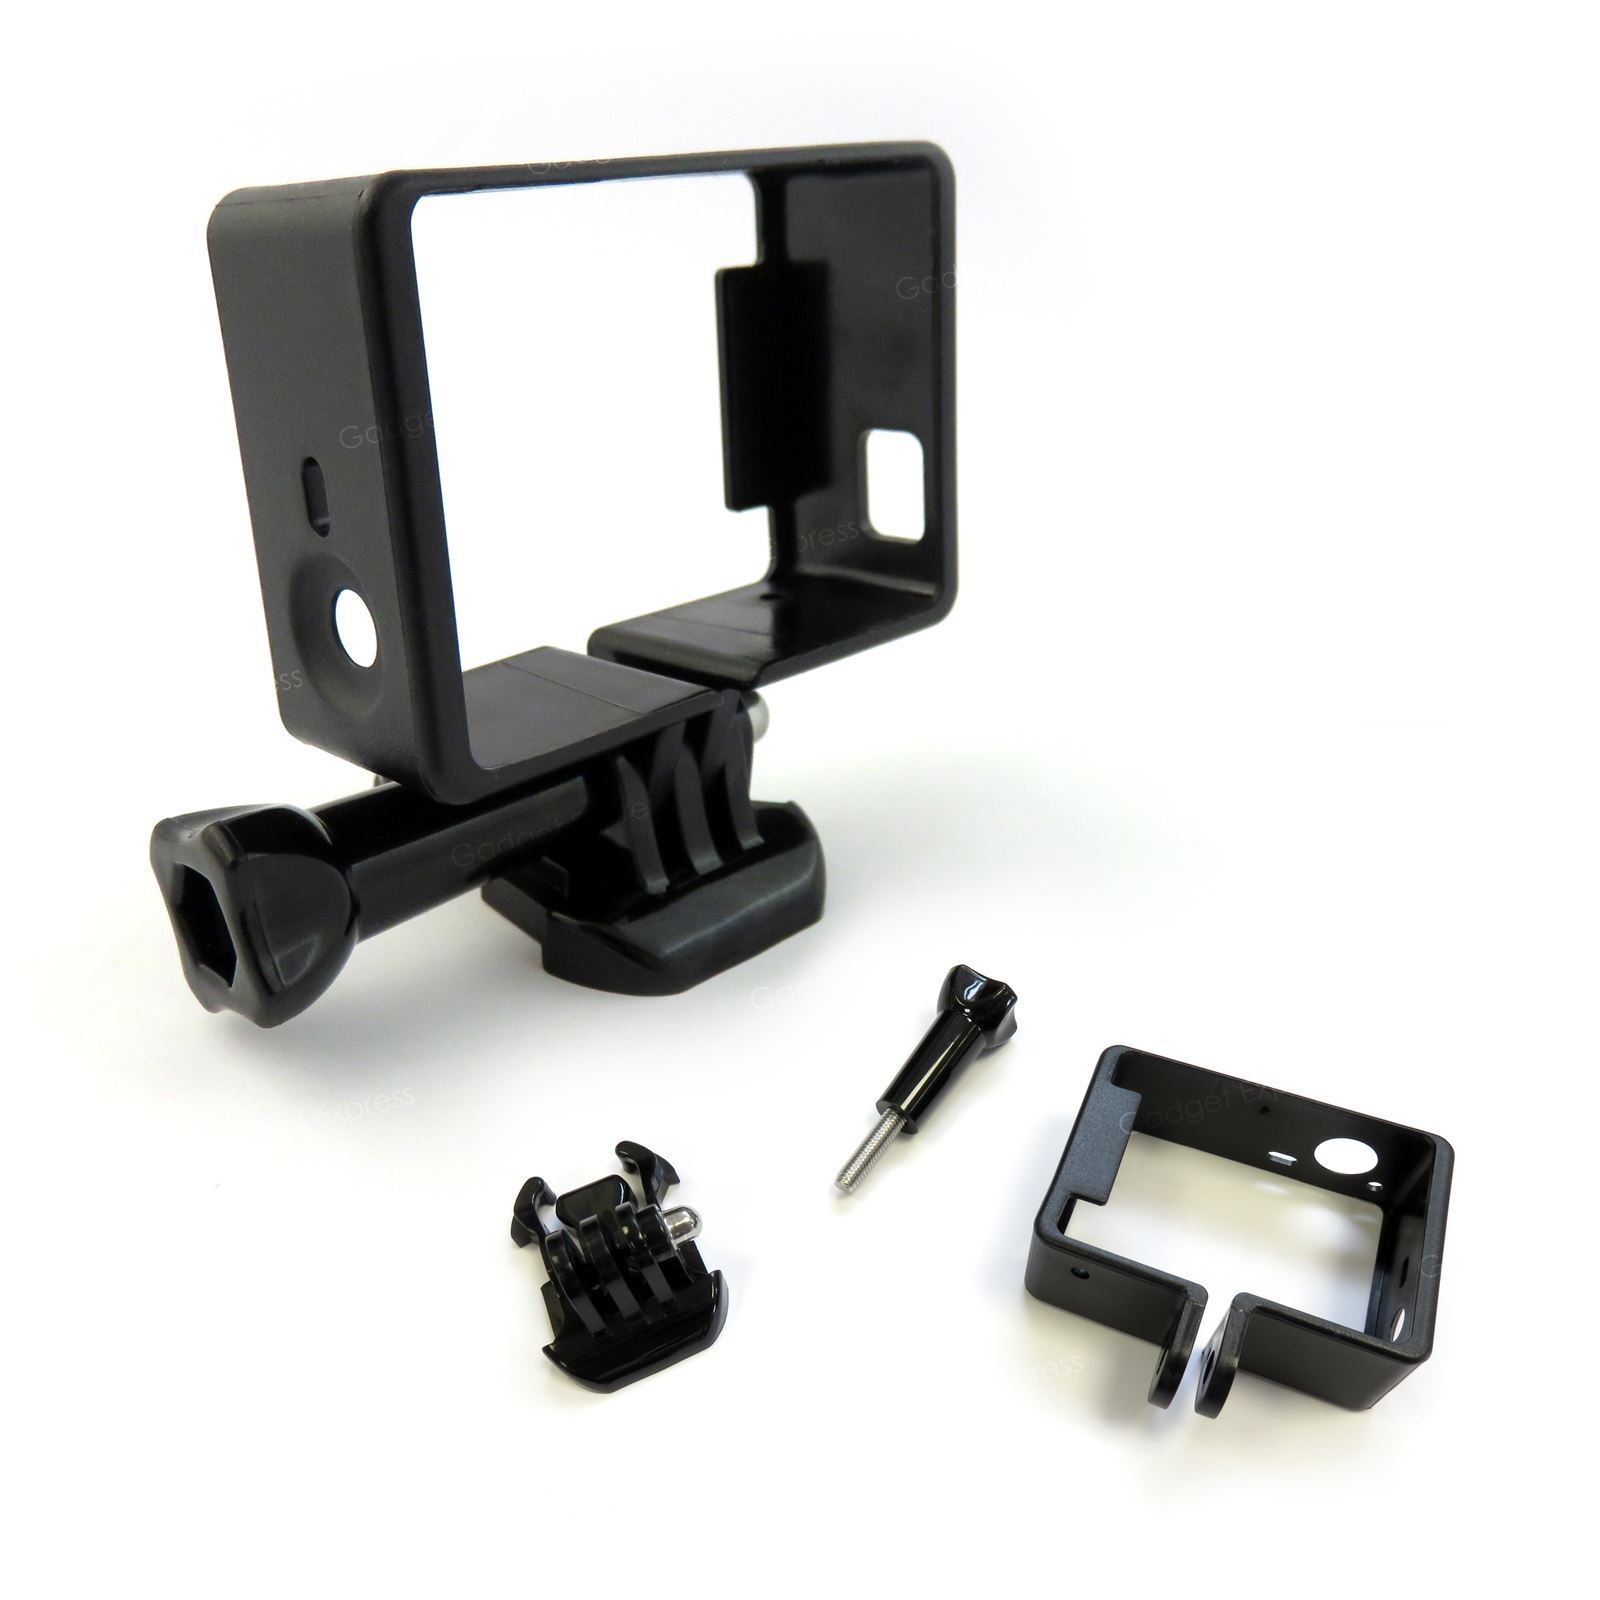 Regular Physique Mount for GoPro Hero three+ 4 High-def digital camera Border Case Housing Gear